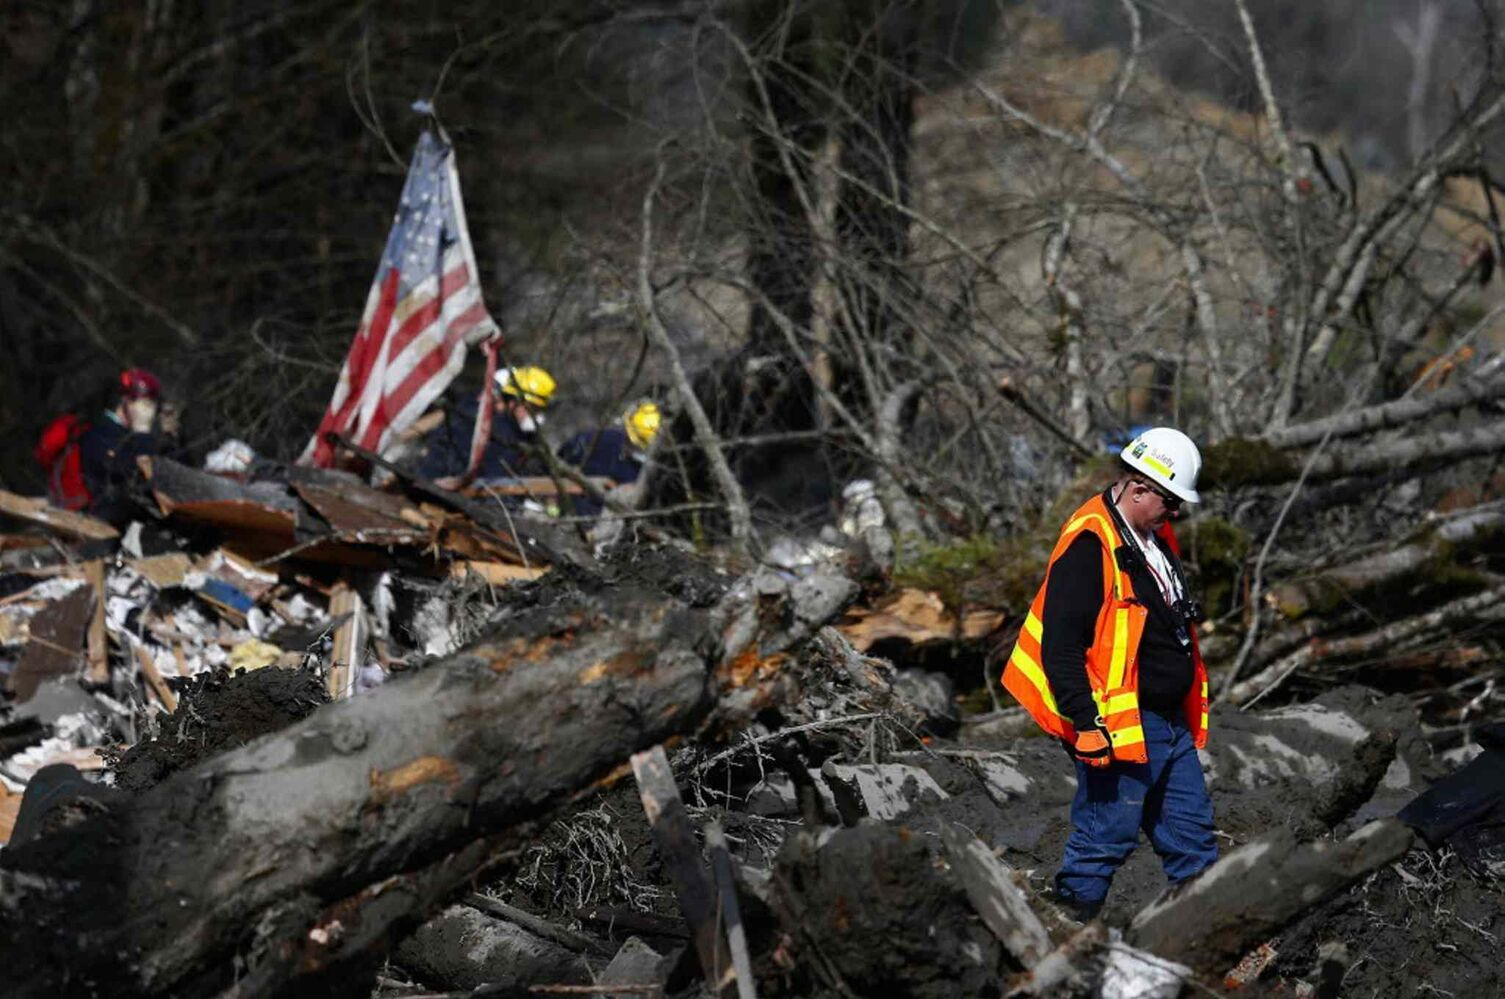 Washington State Department of Transportation safety manager Mike Breysse examines the areas devastated by Saturday's giant mudslide.  (Lindsey Wasson / Seattle Times / MCT)